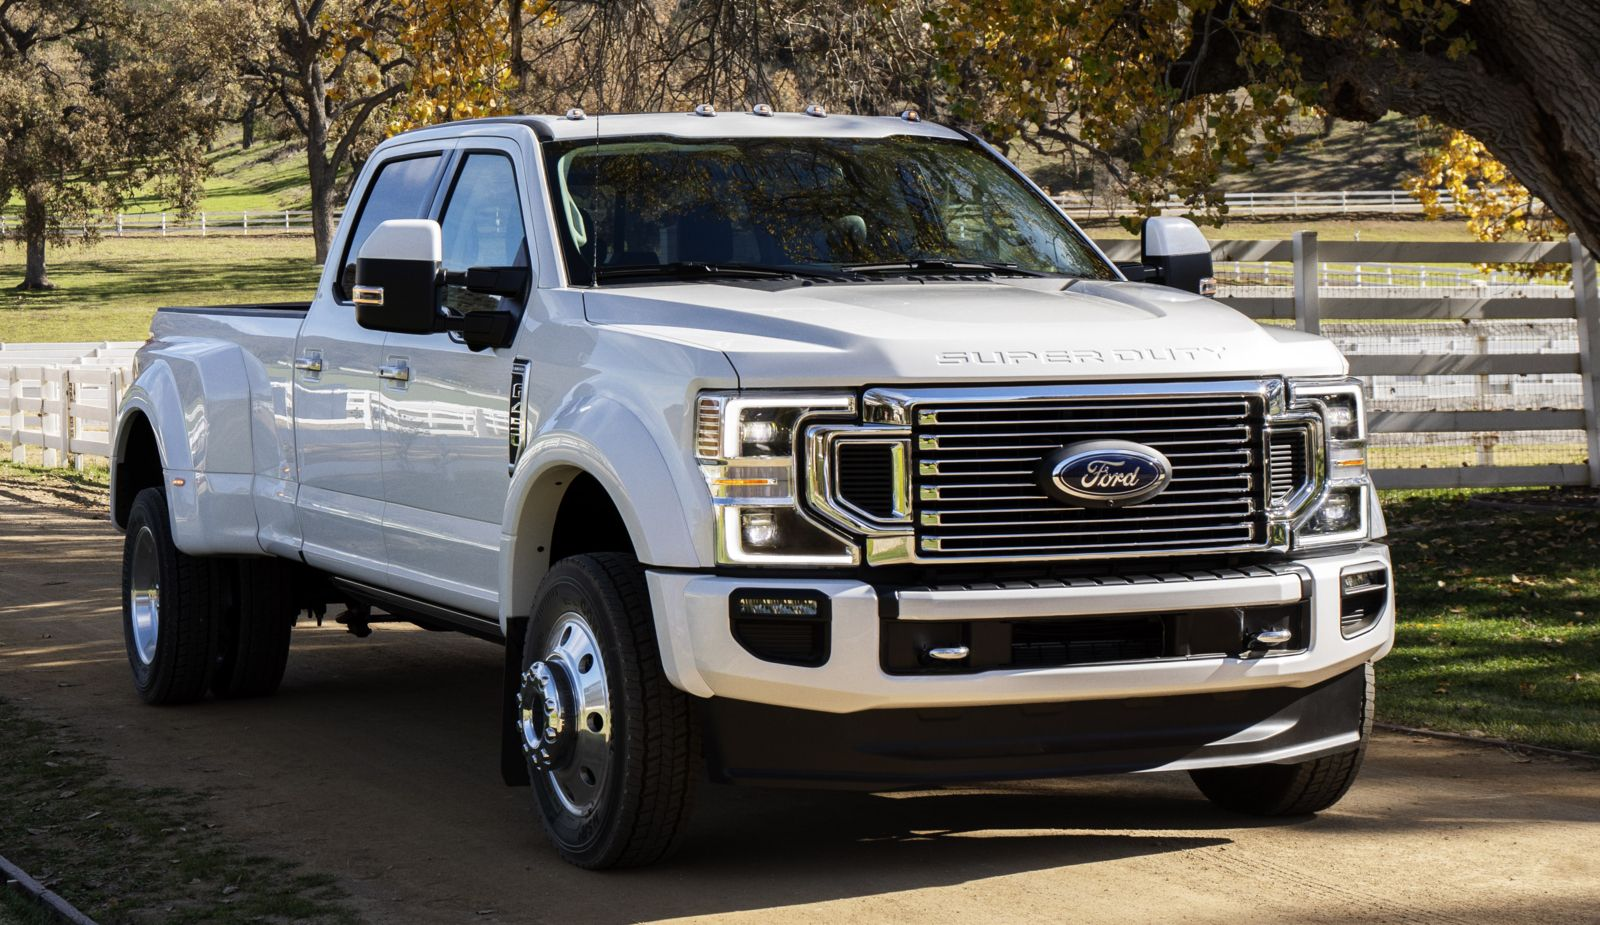 2020 Ford King Ranch F350 Spy Shoot In 2020 Ford Super Duty Super Duty Trucks Ford F Series